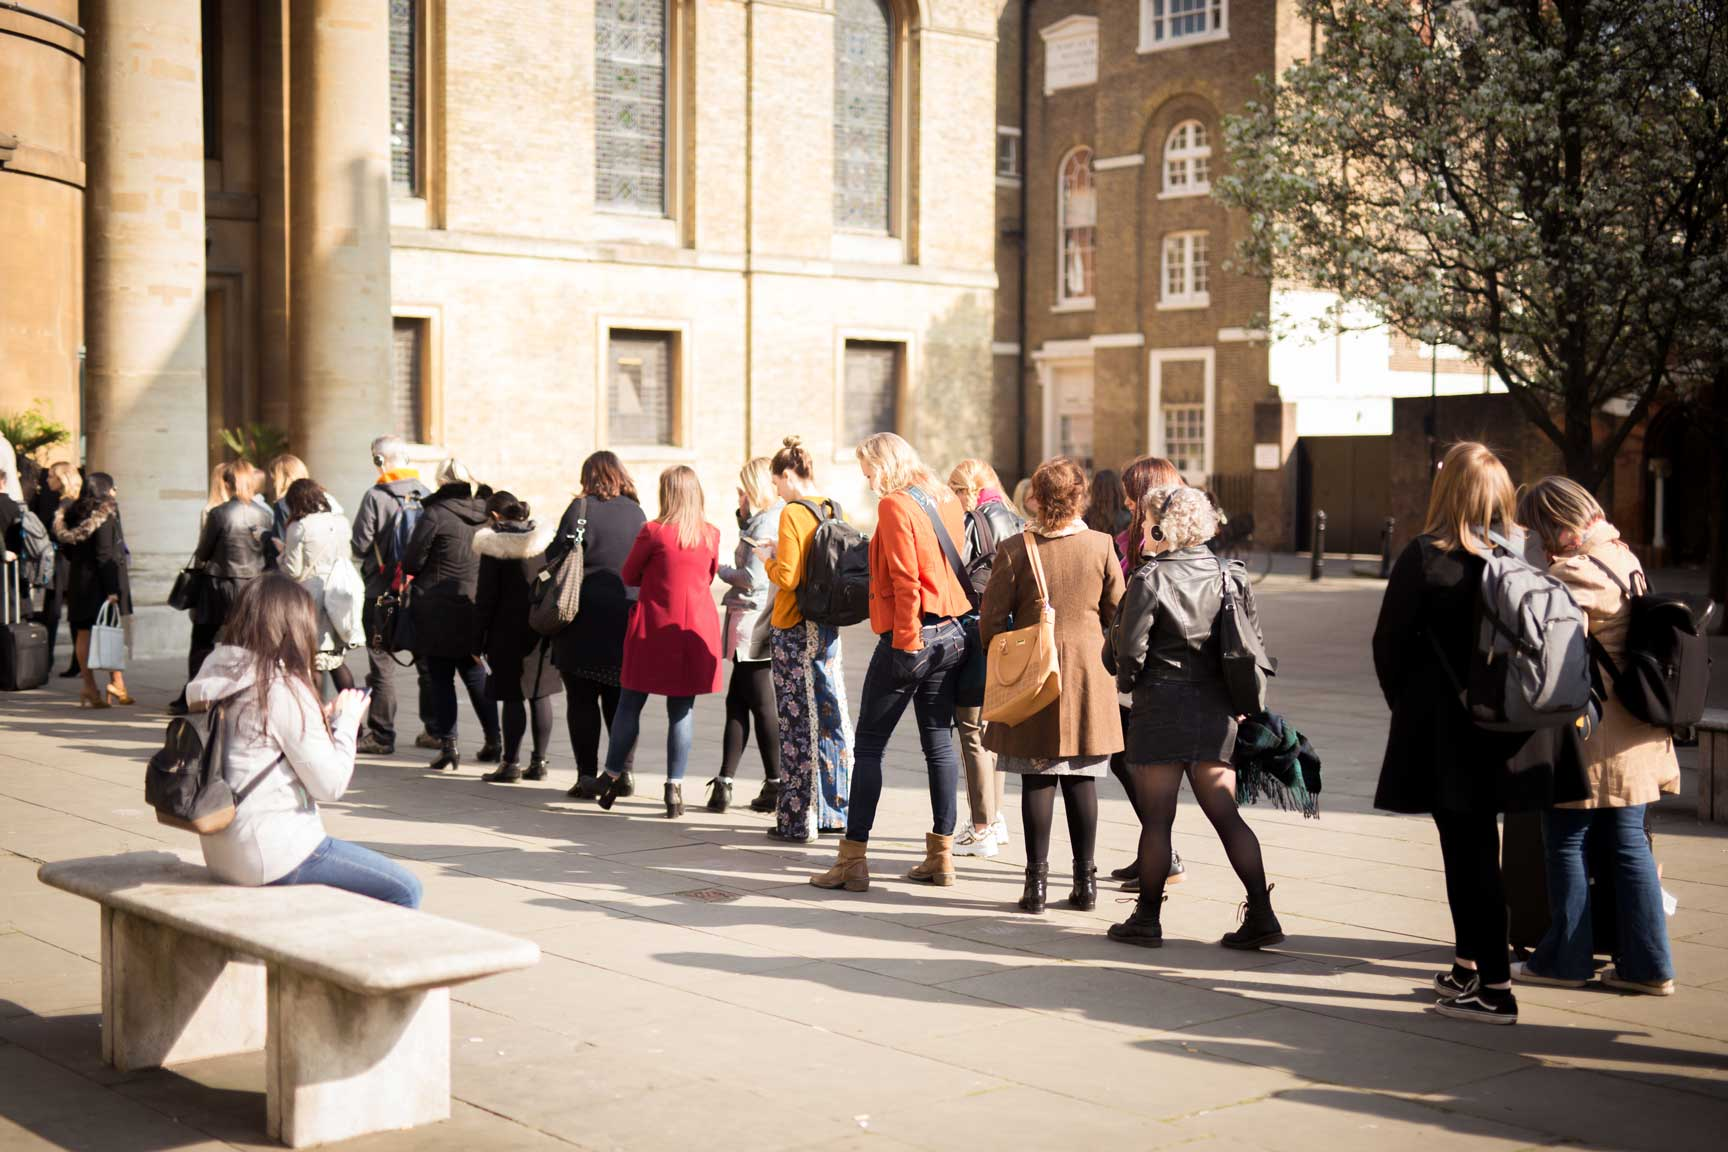 queuing for conference at Conference with screens and sofa style seating at St Mary's Venue Hire, London